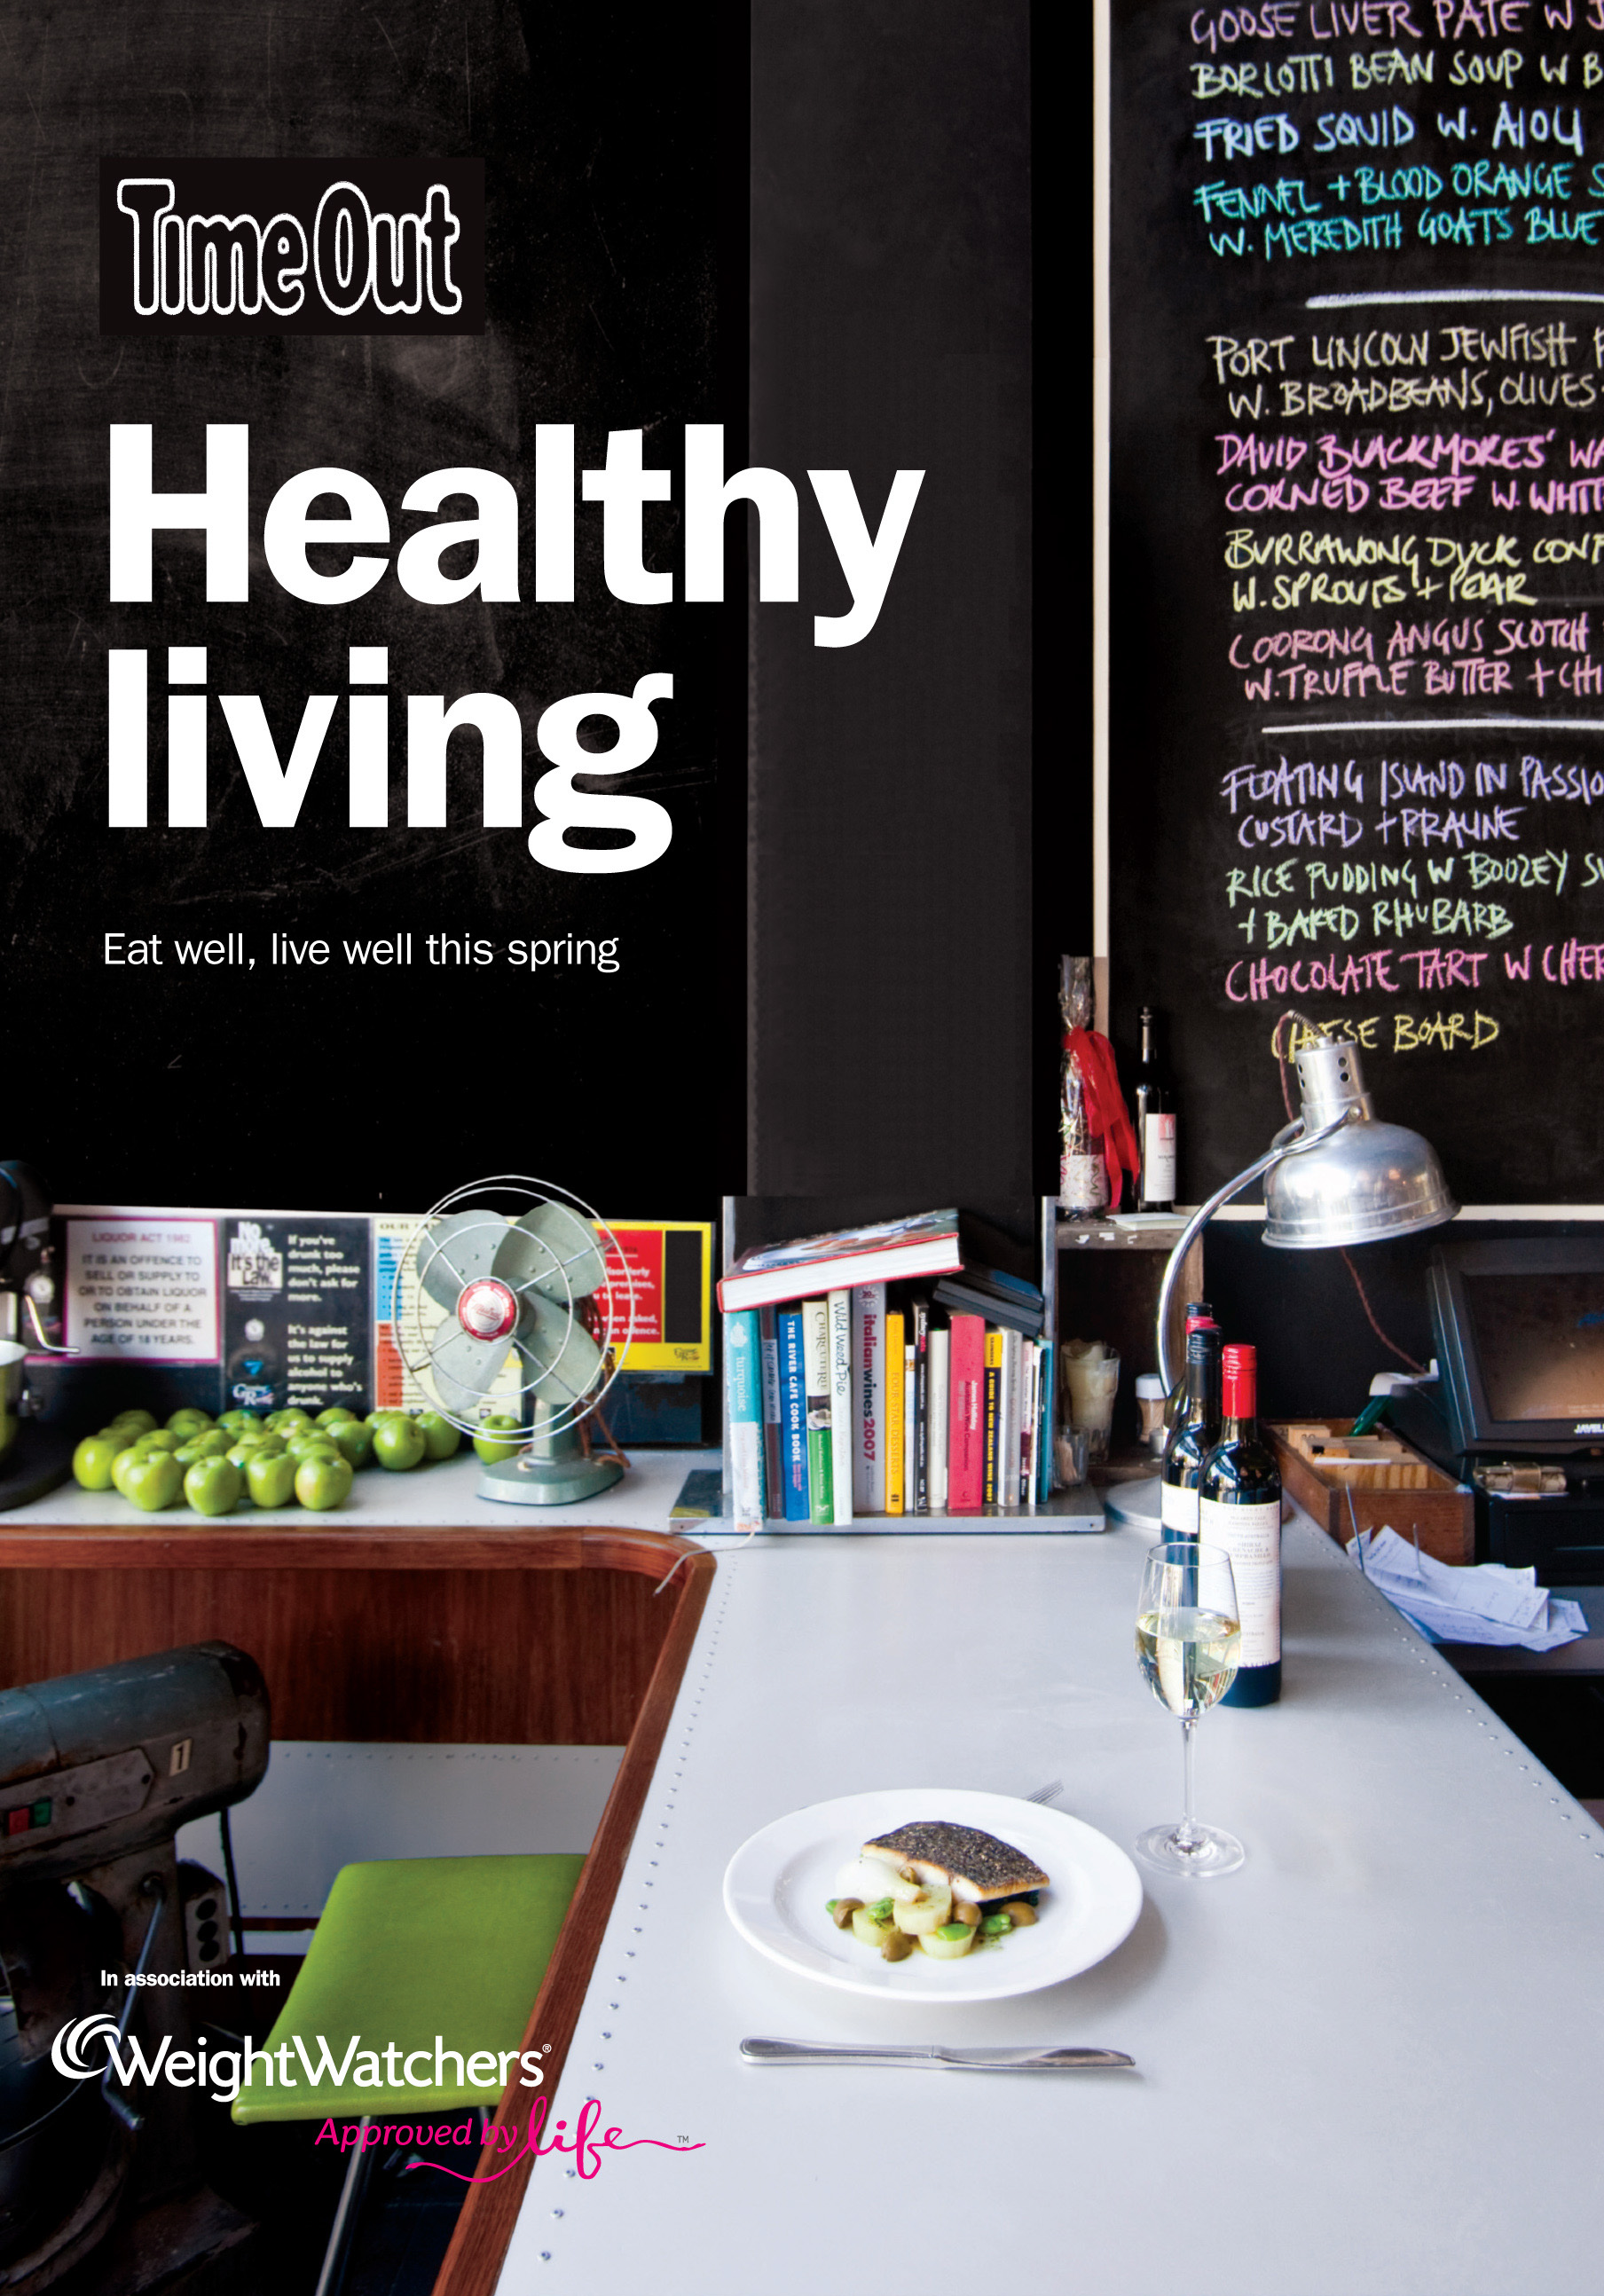 Time Out Healthy Living Guide